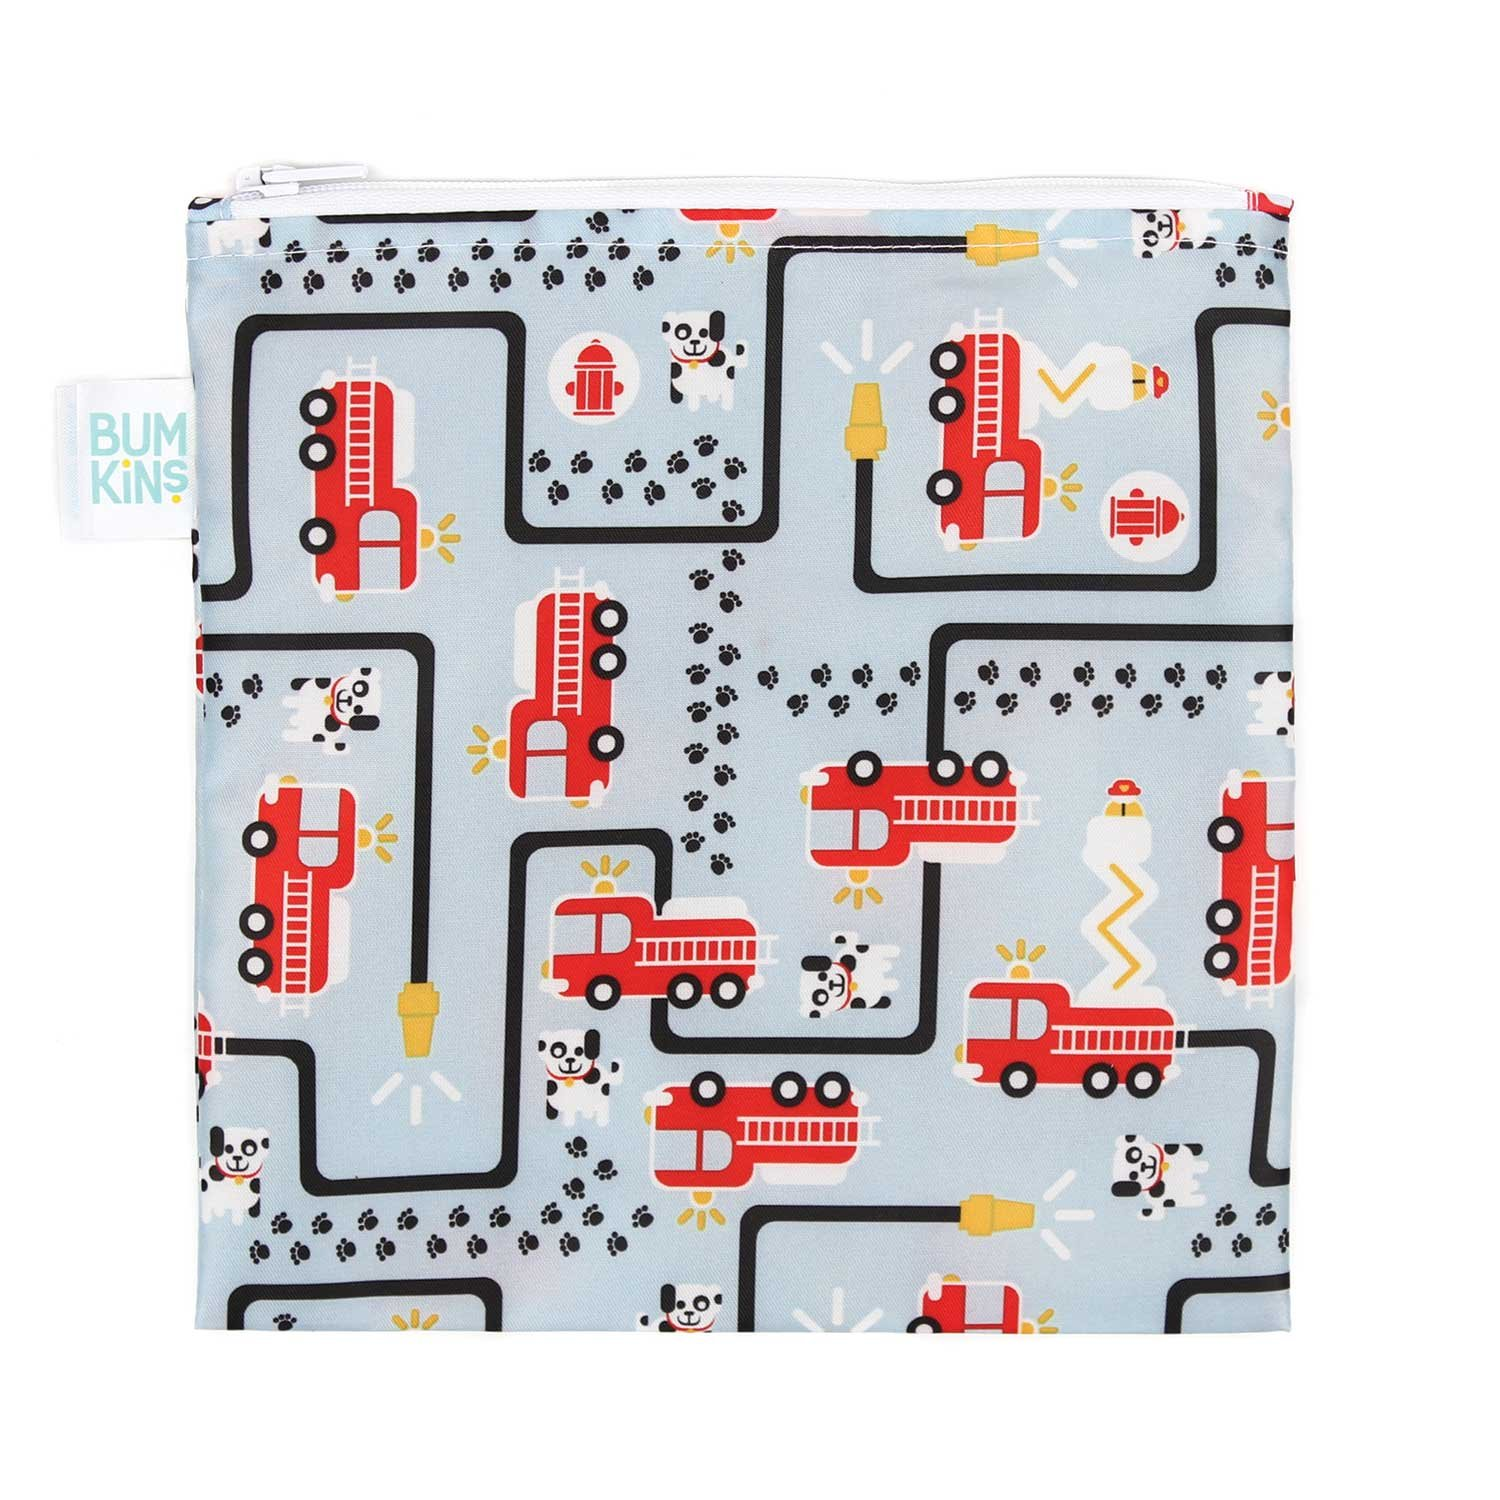 Bumkins Reusable Snack Bag Large, Fire Engine